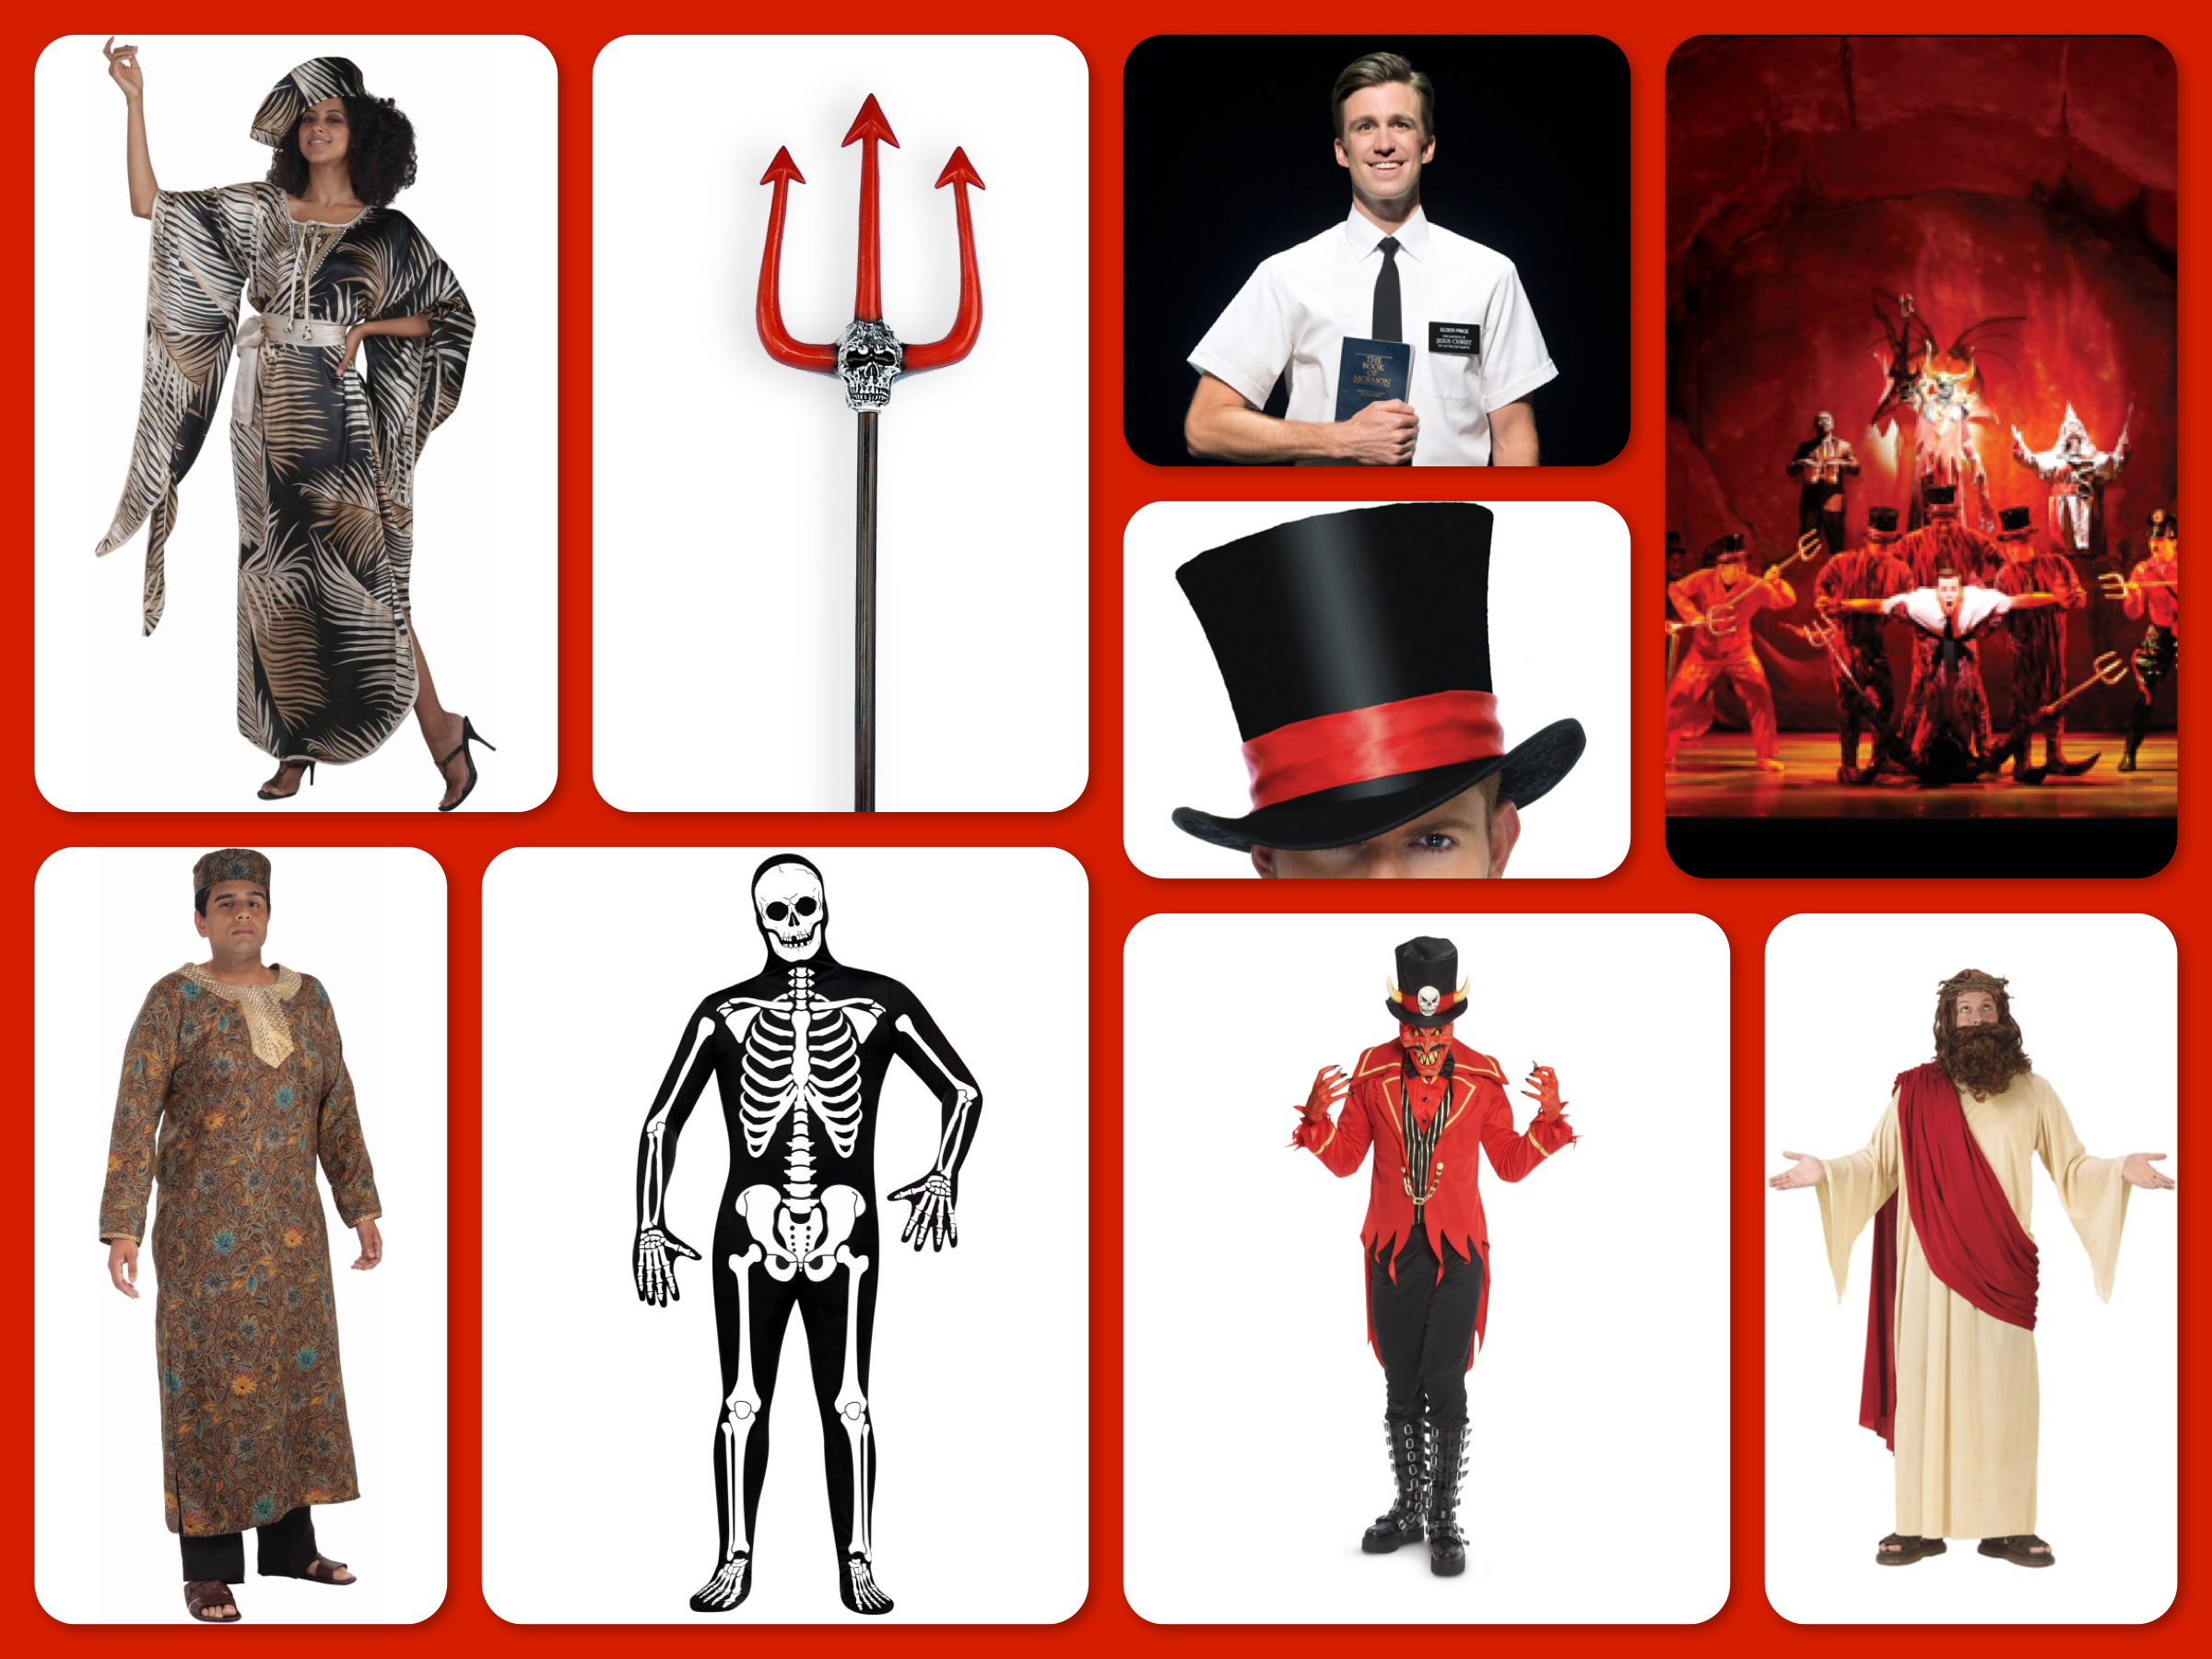 halloween costume ideas book of mormon group costume - Mormon Halloween Costumes